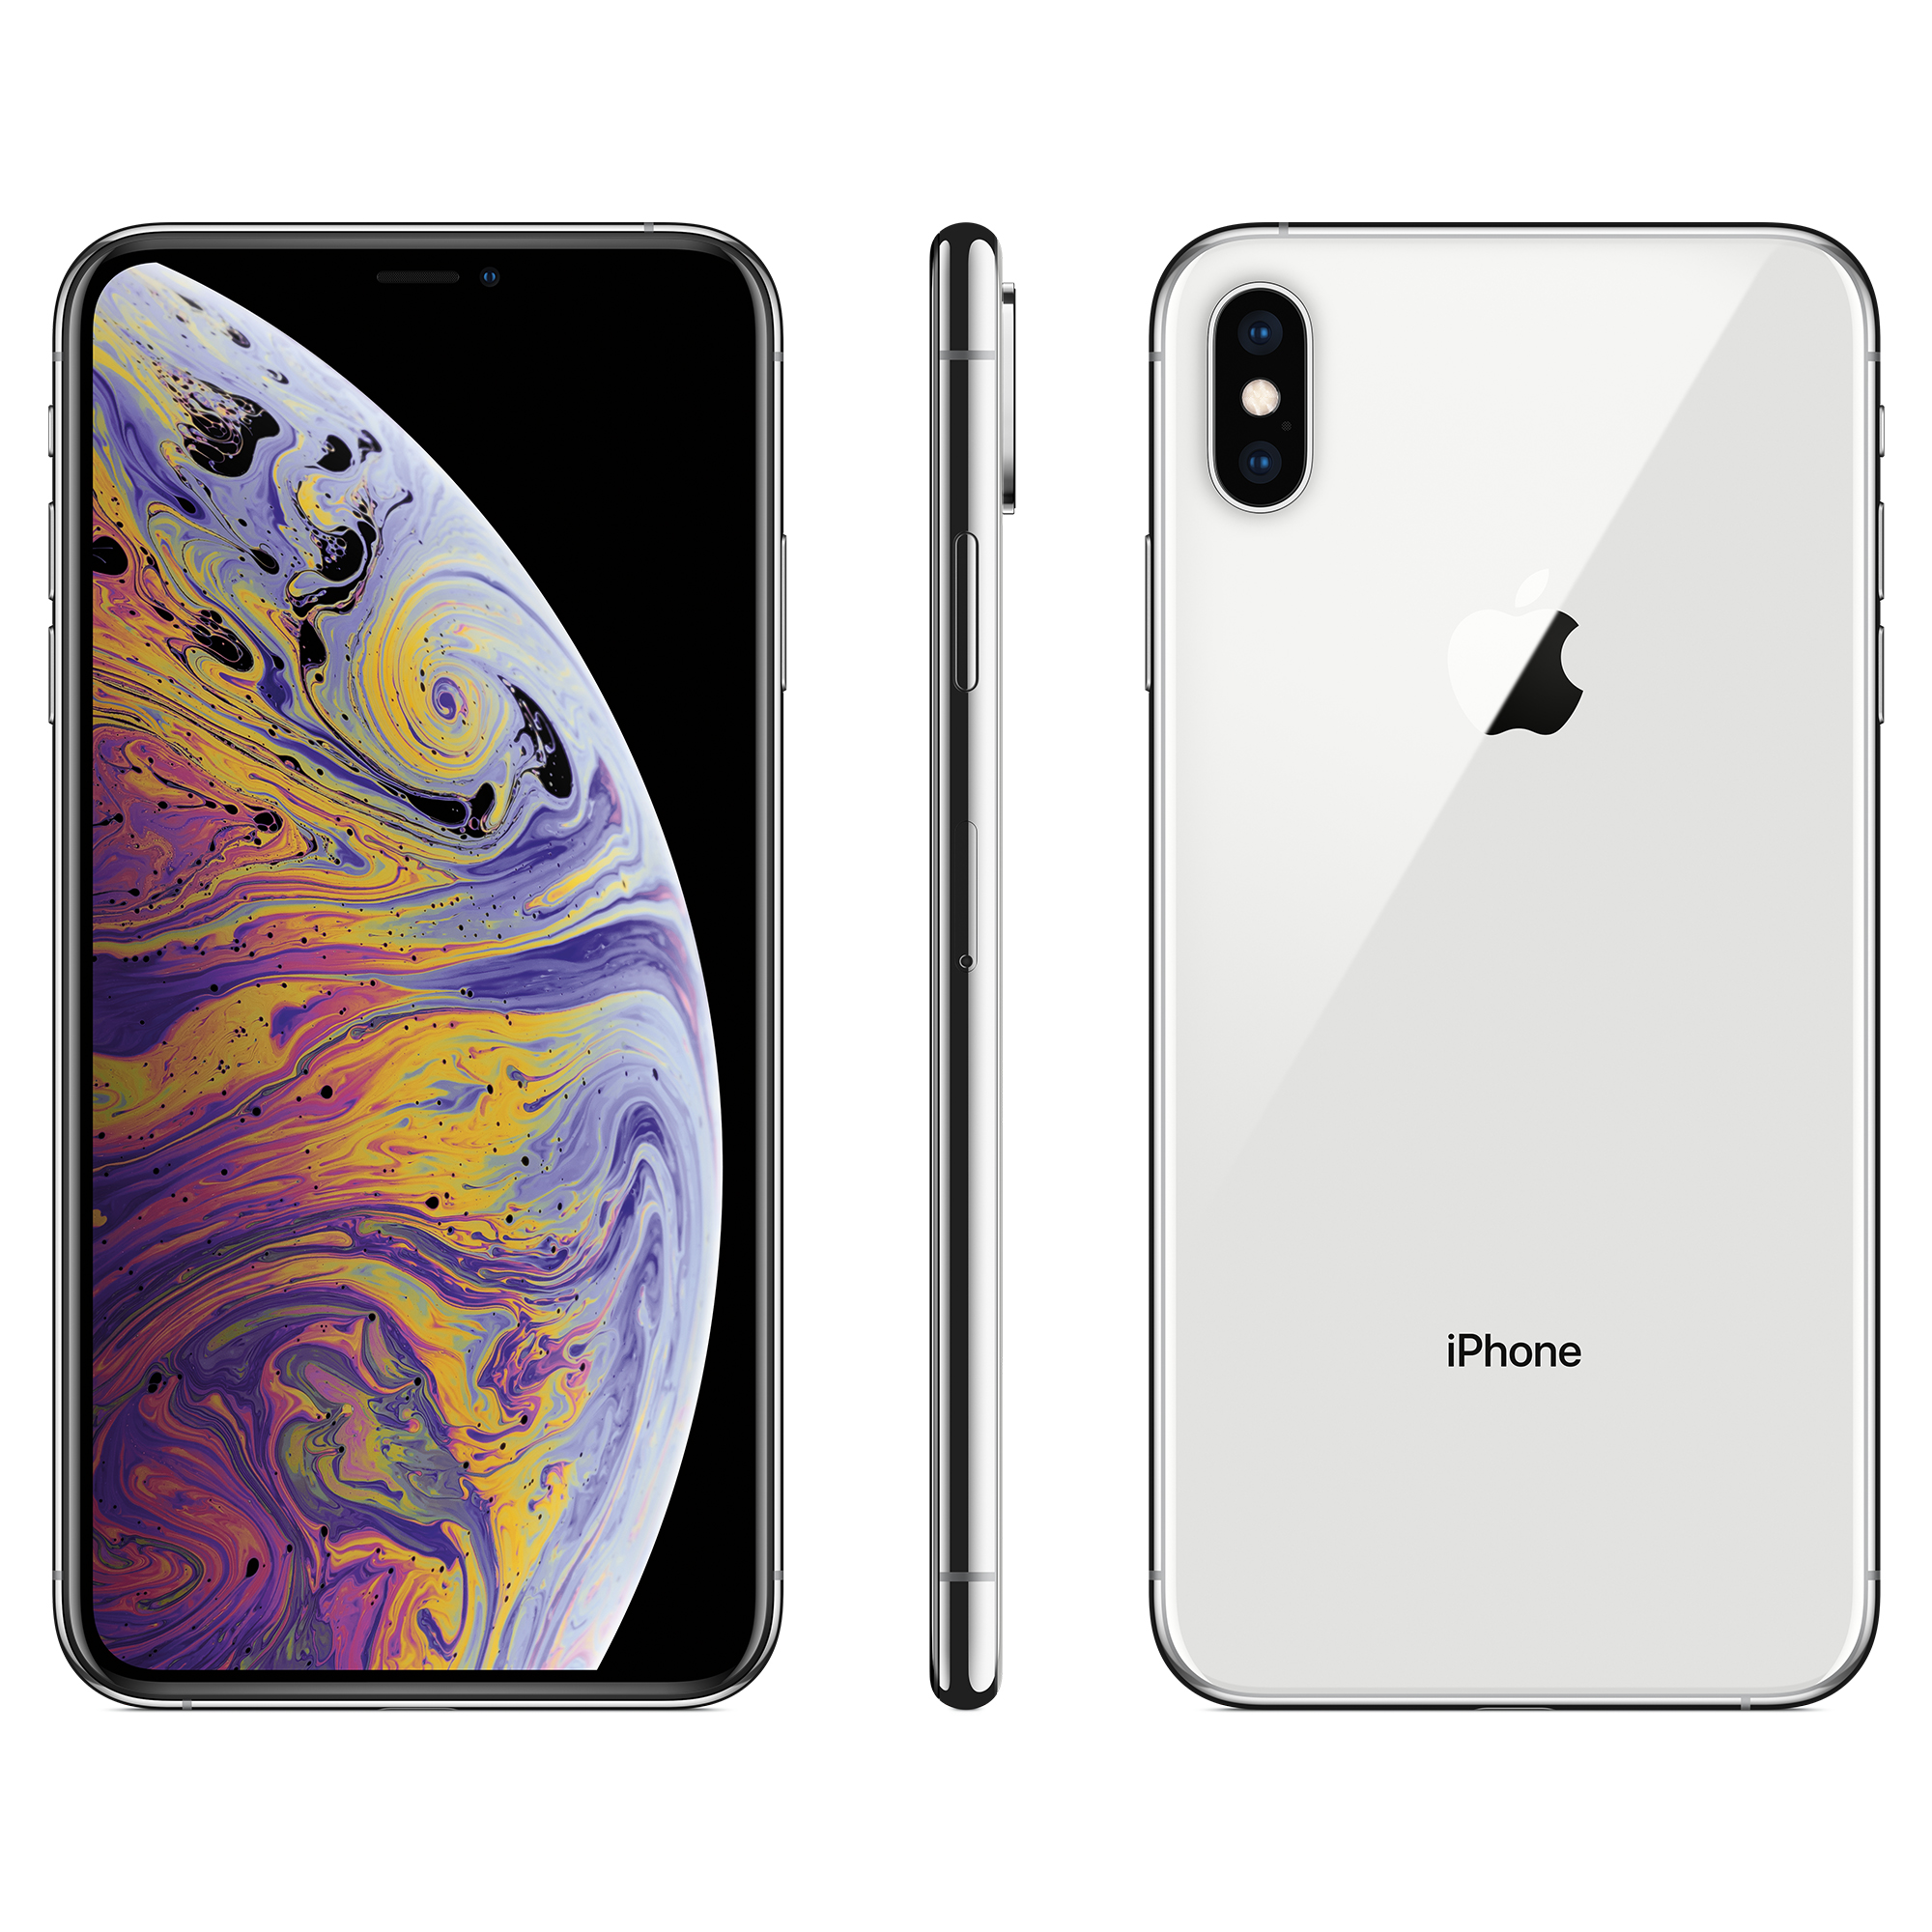 Total Wireless Apple iPhone XS MAX, 64GB Silver - Prepaid Smartphone